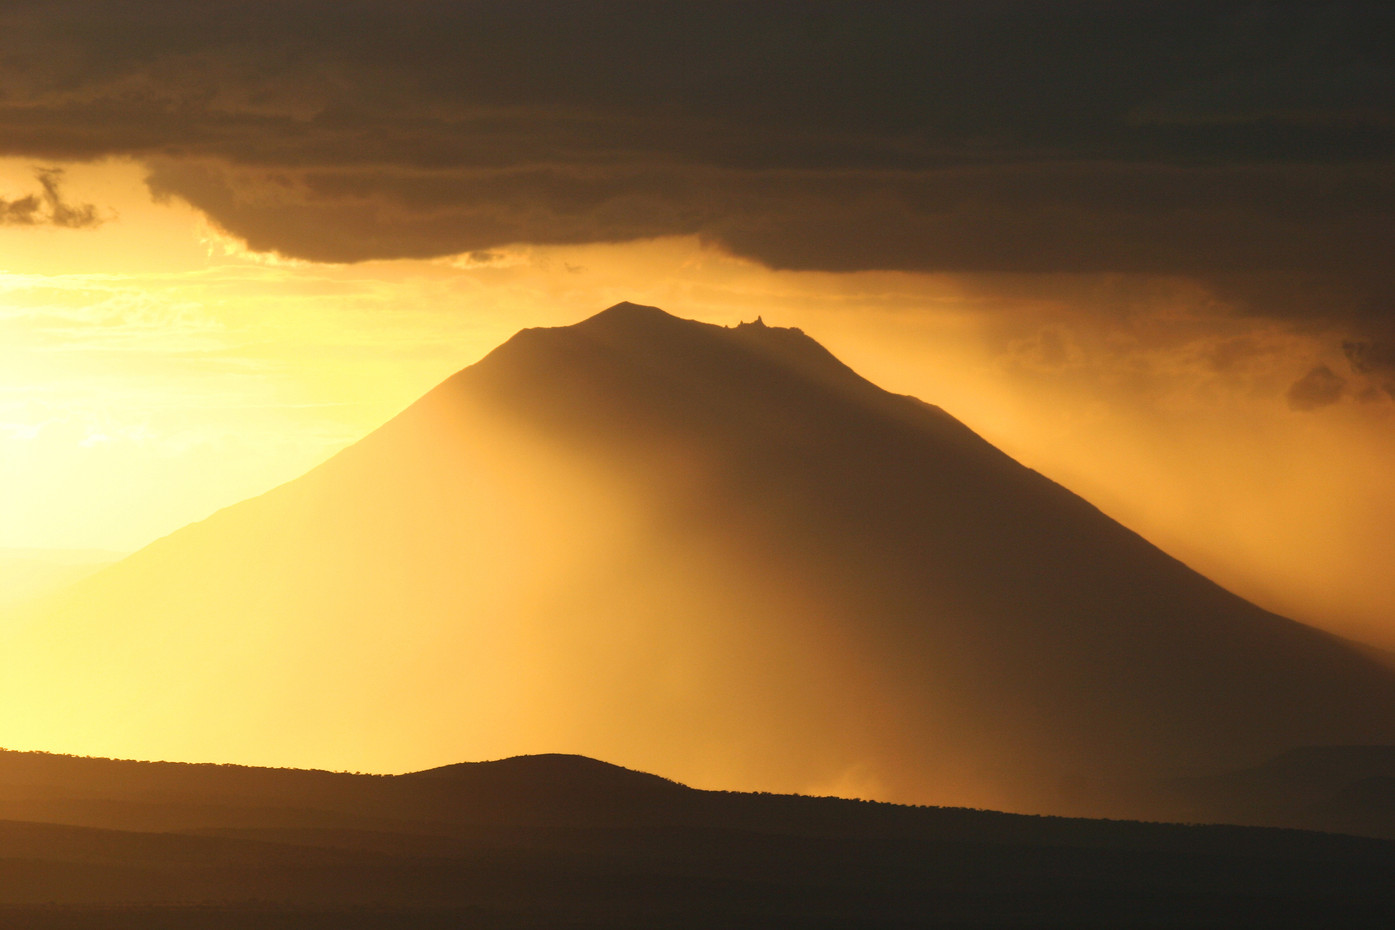 Sunset over Oldonyo Lengai active volcano, Tanzania